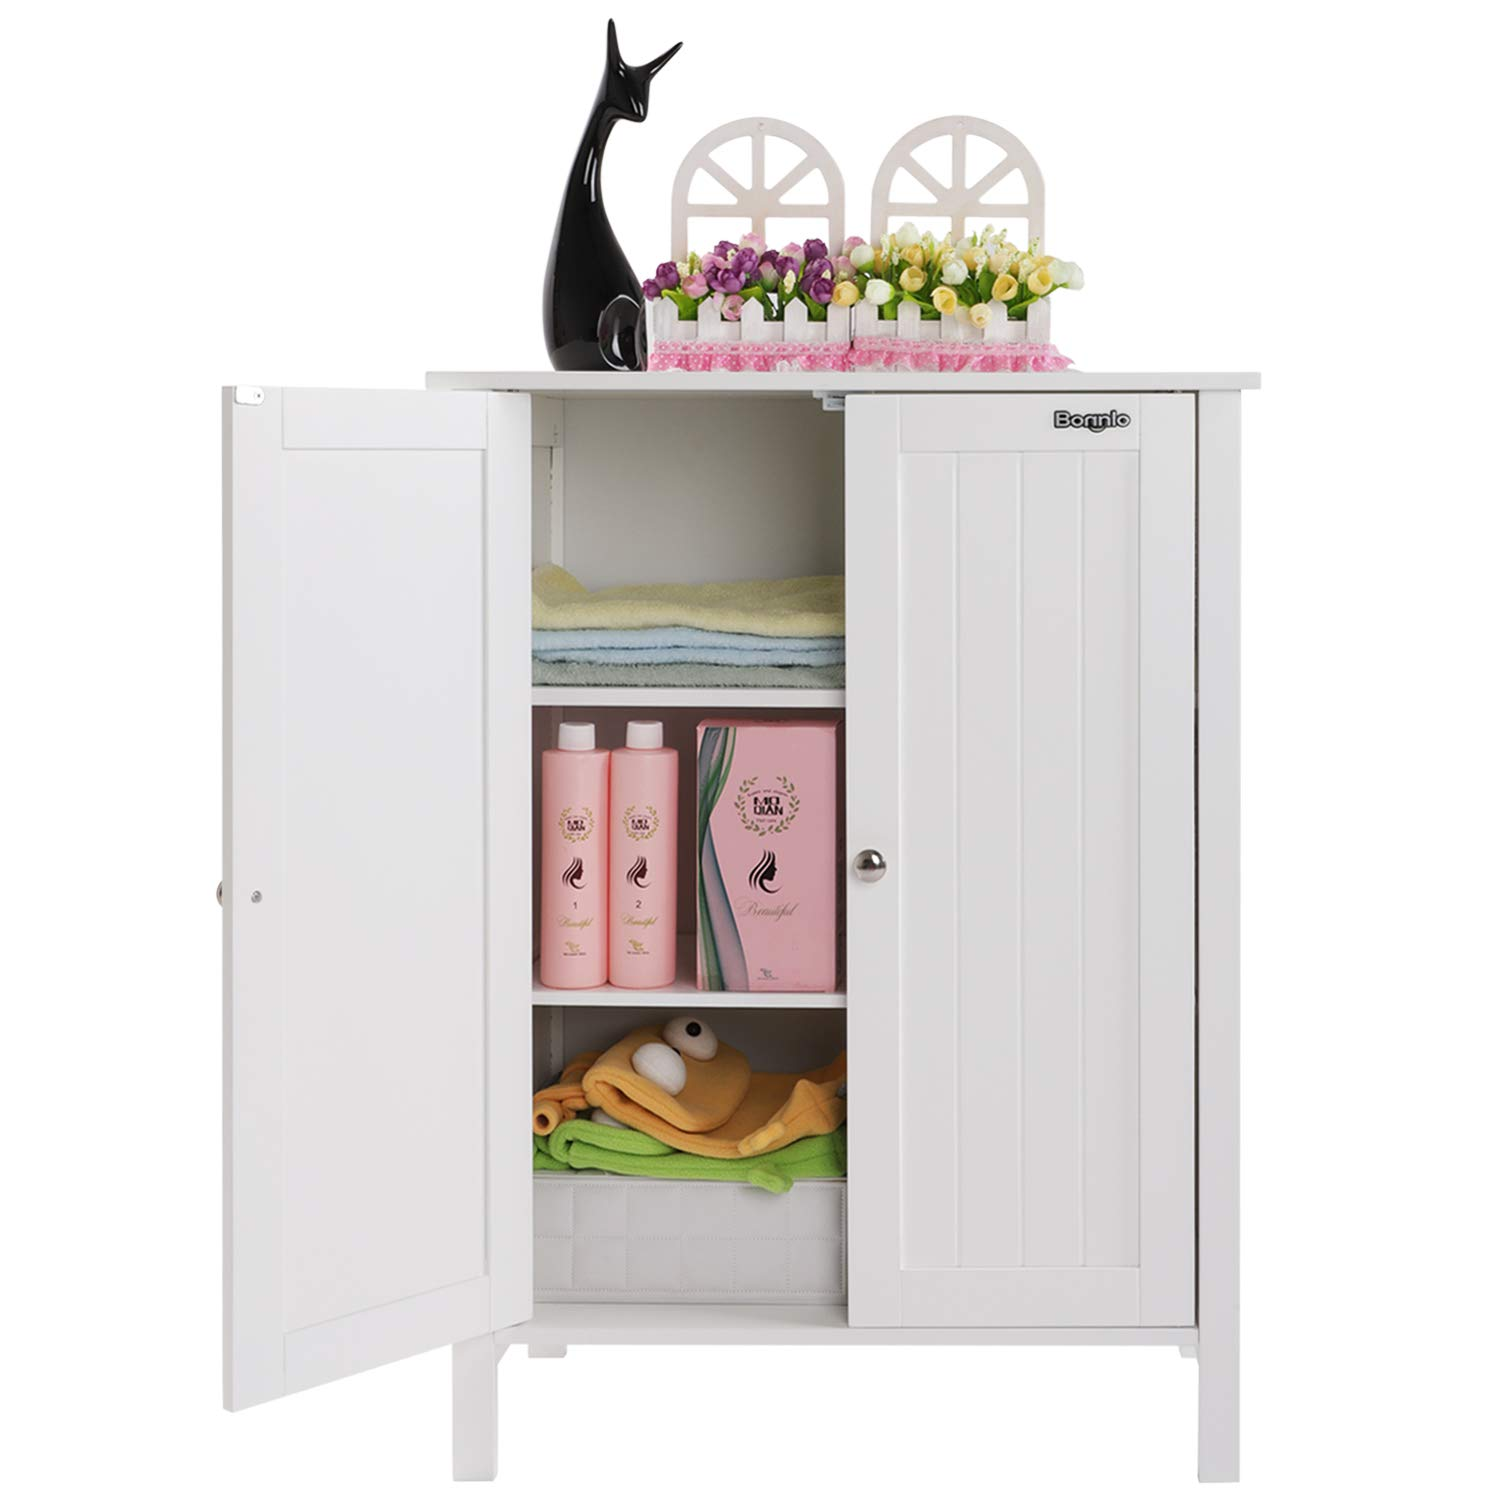 Bonnlo Bathroom Cabinet Free Standing Floor Storage With